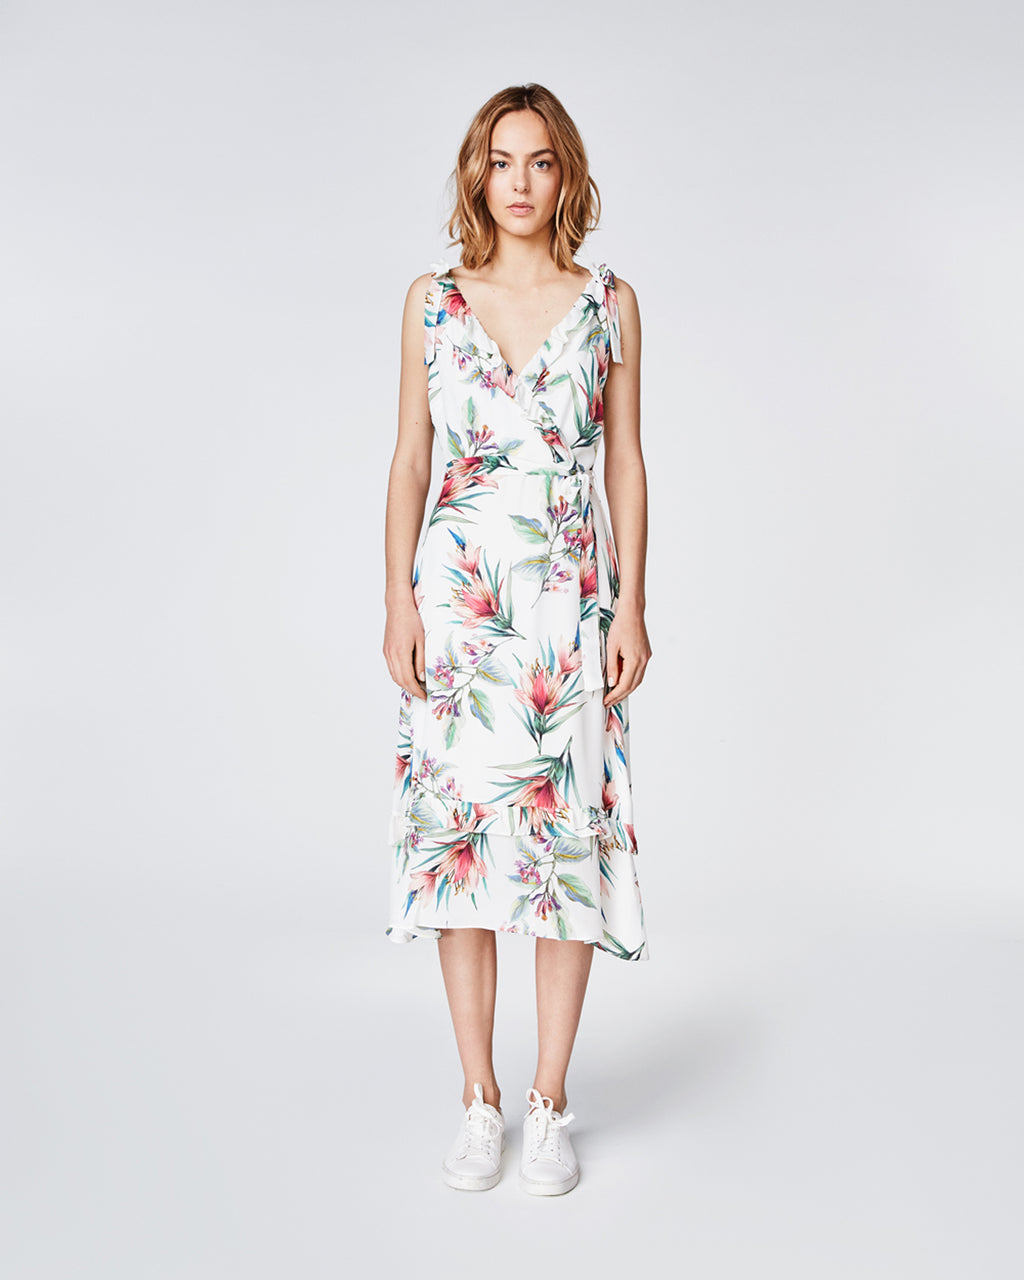 BQ10295 - TROPICALE V NECK DRESS - dresses - midi - With a ruffle v neck and tie waist, this sleeveless dress creates a form flattering silhouette. Falling to a midi length, this dress is crafted in our Tropicale print making it perfect for warmer weather. Finished with a concealed zipper and fully lined. Final Sale